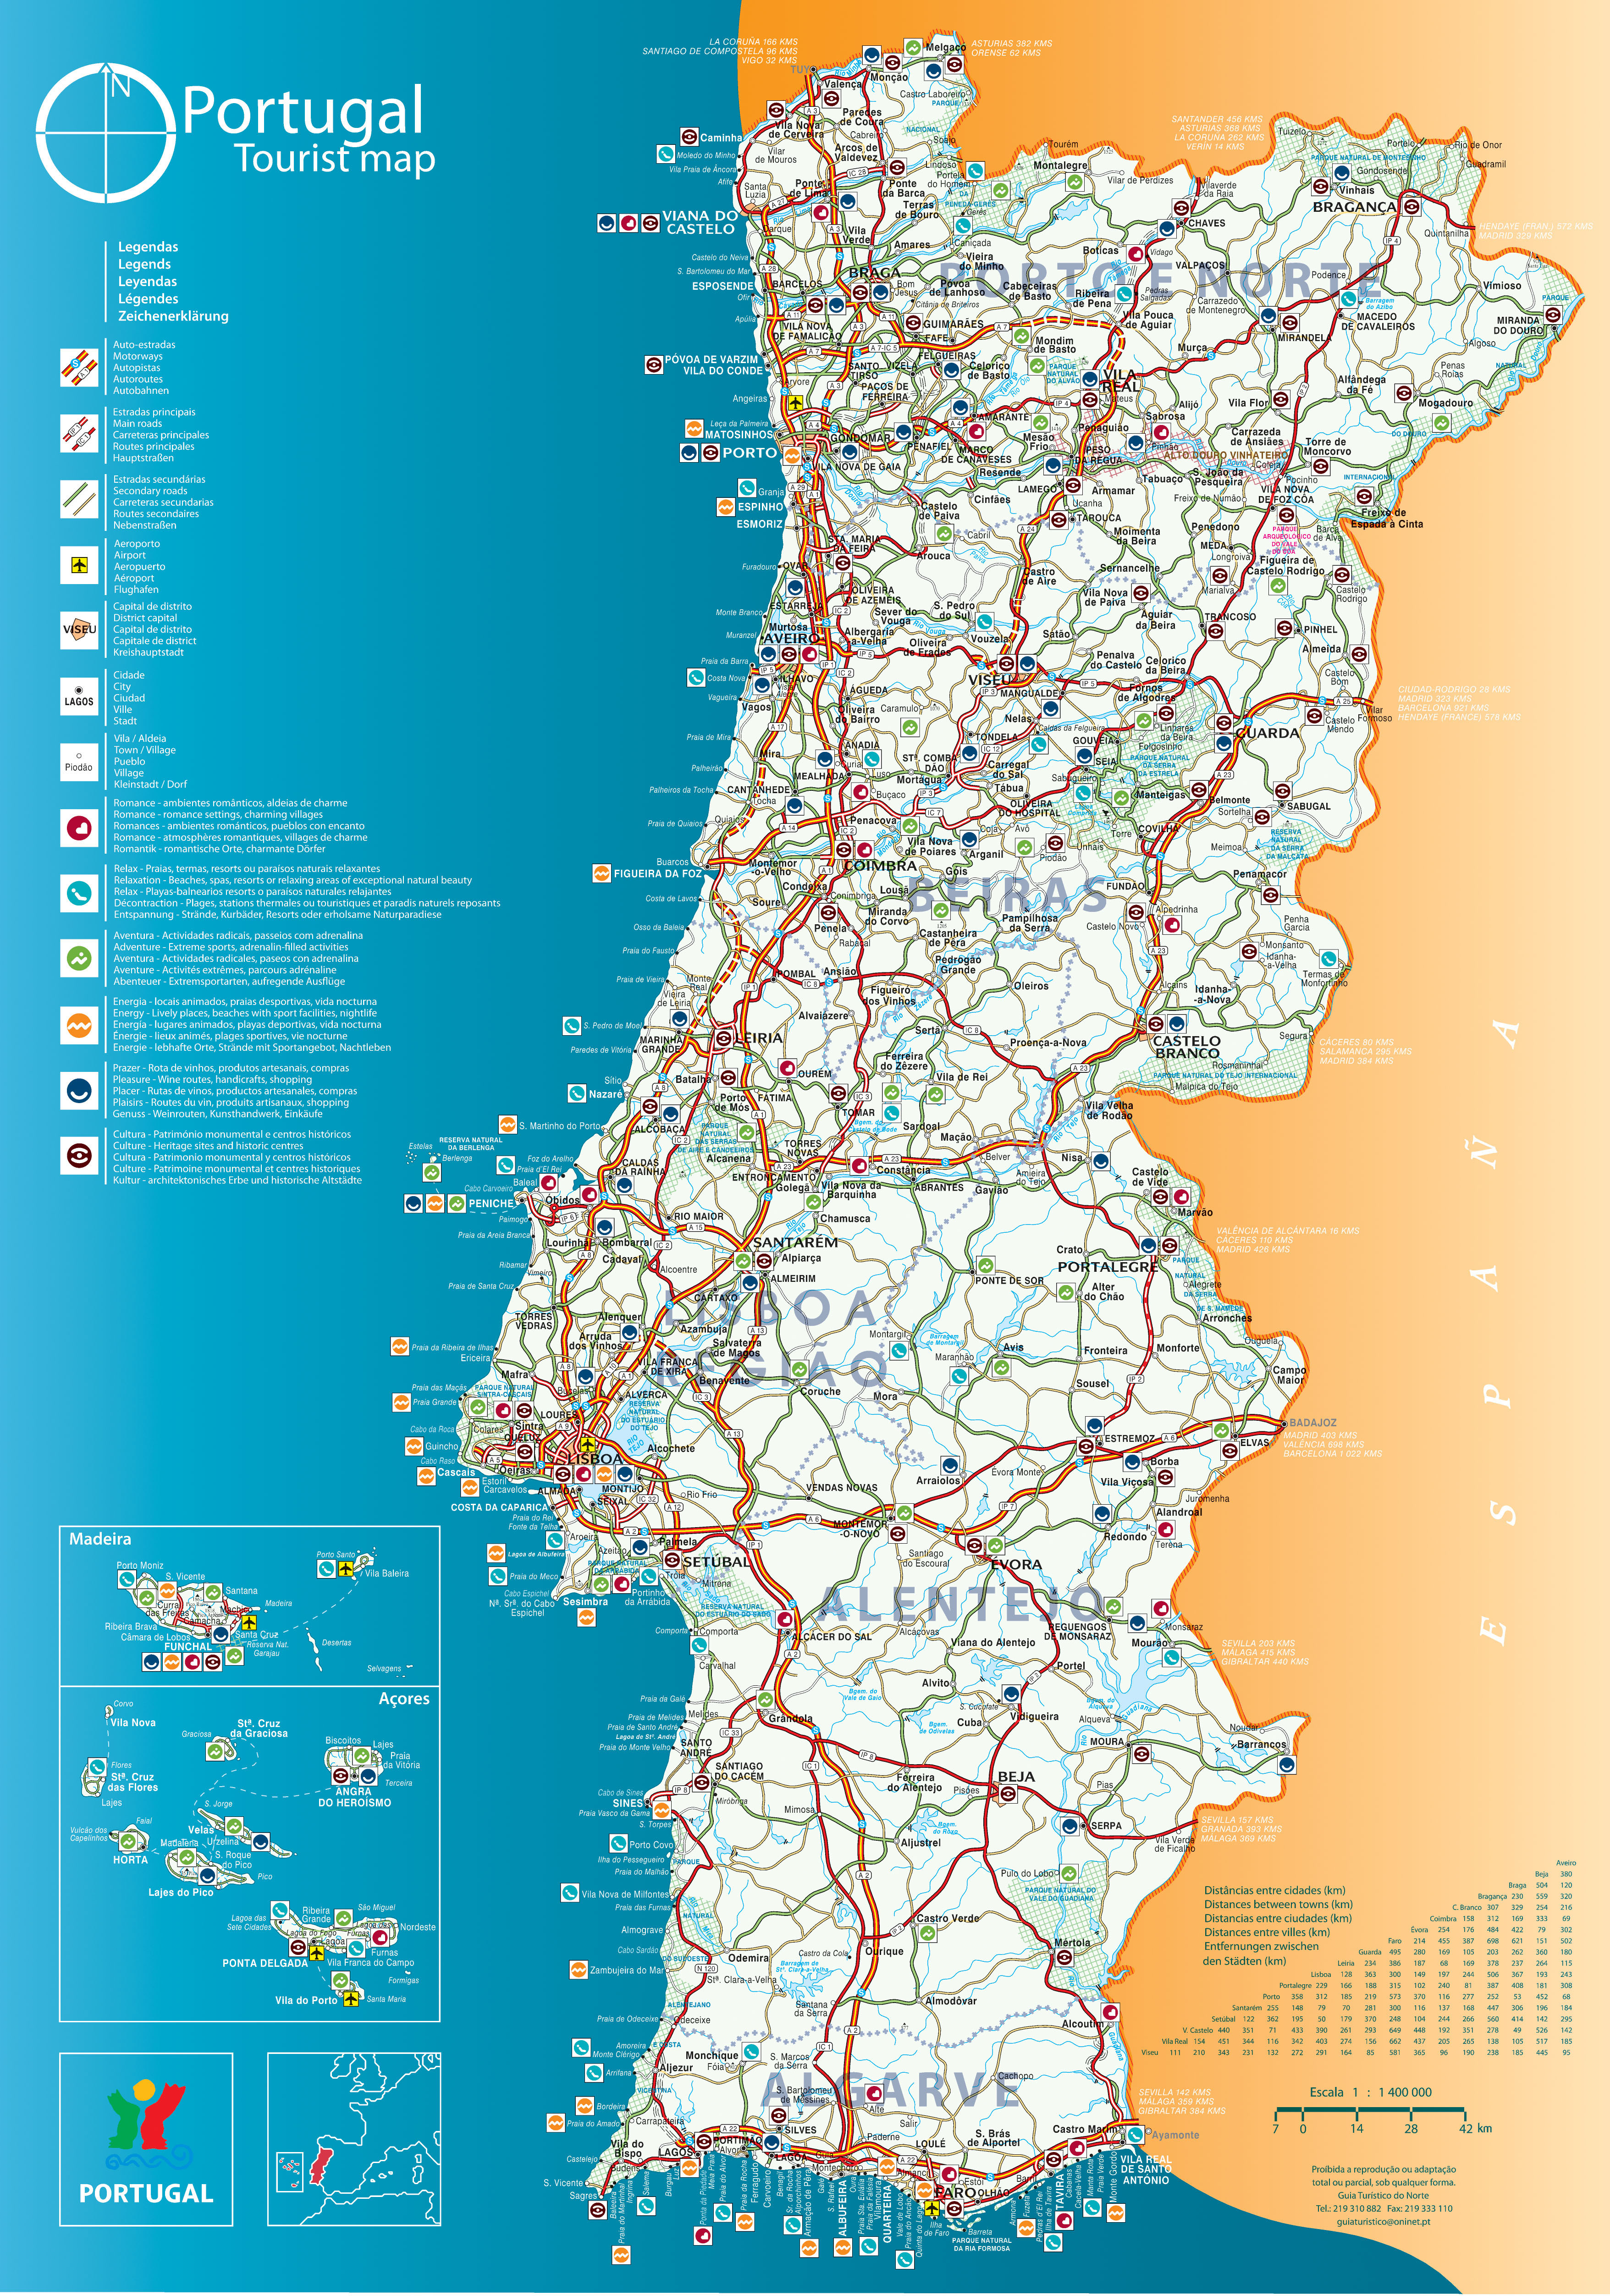 maps of portugal detailed map of portugal in english tourist map of portugal road map of. Black Bedroom Furniture Sets. Home Design Ideas